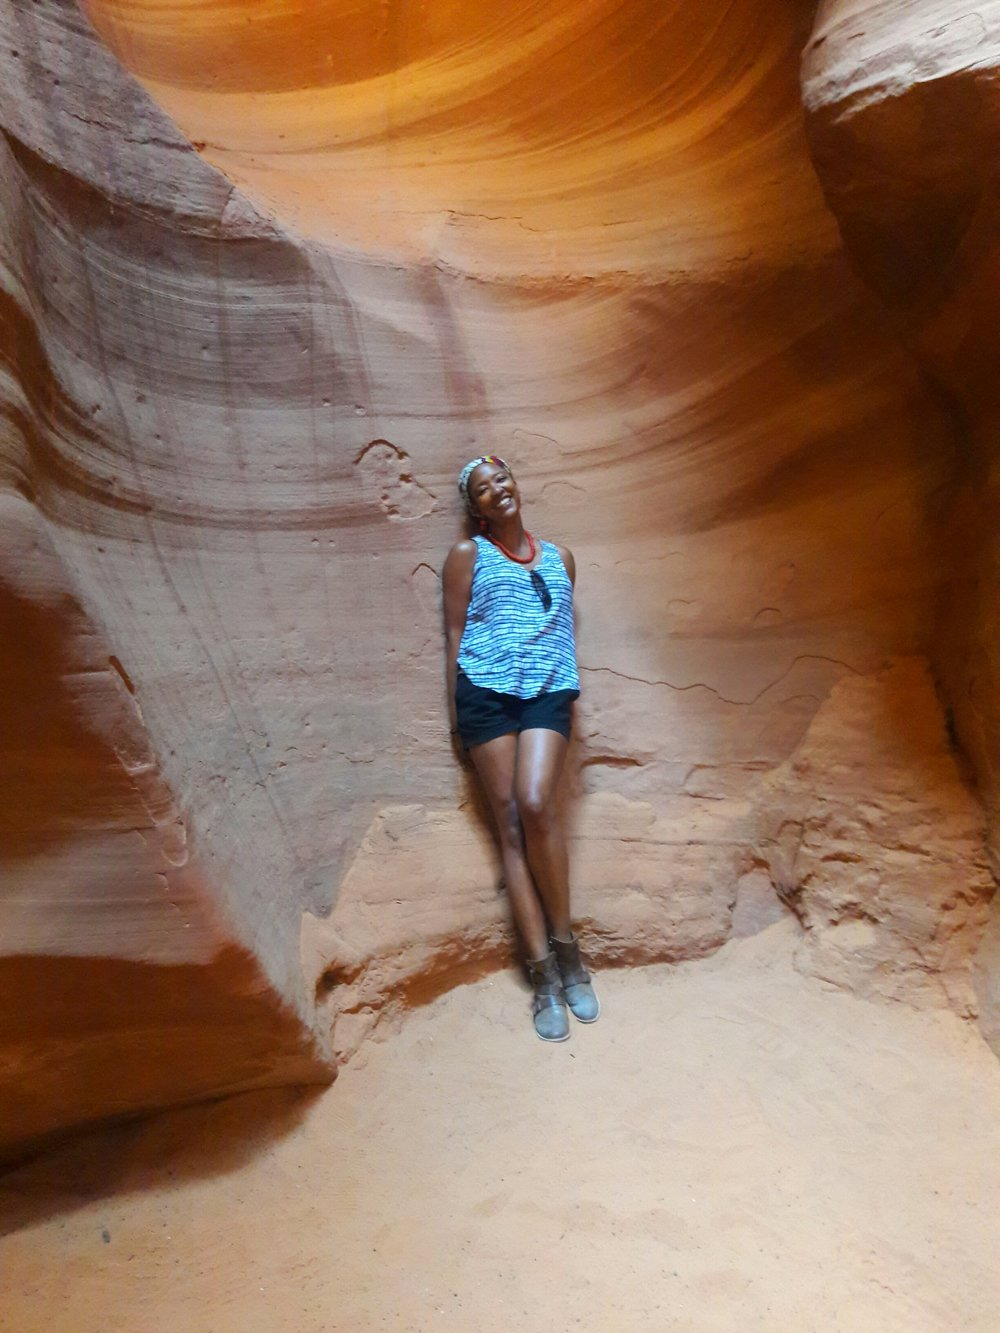 antelope-canyon-recipes-for-travel-5.jpg